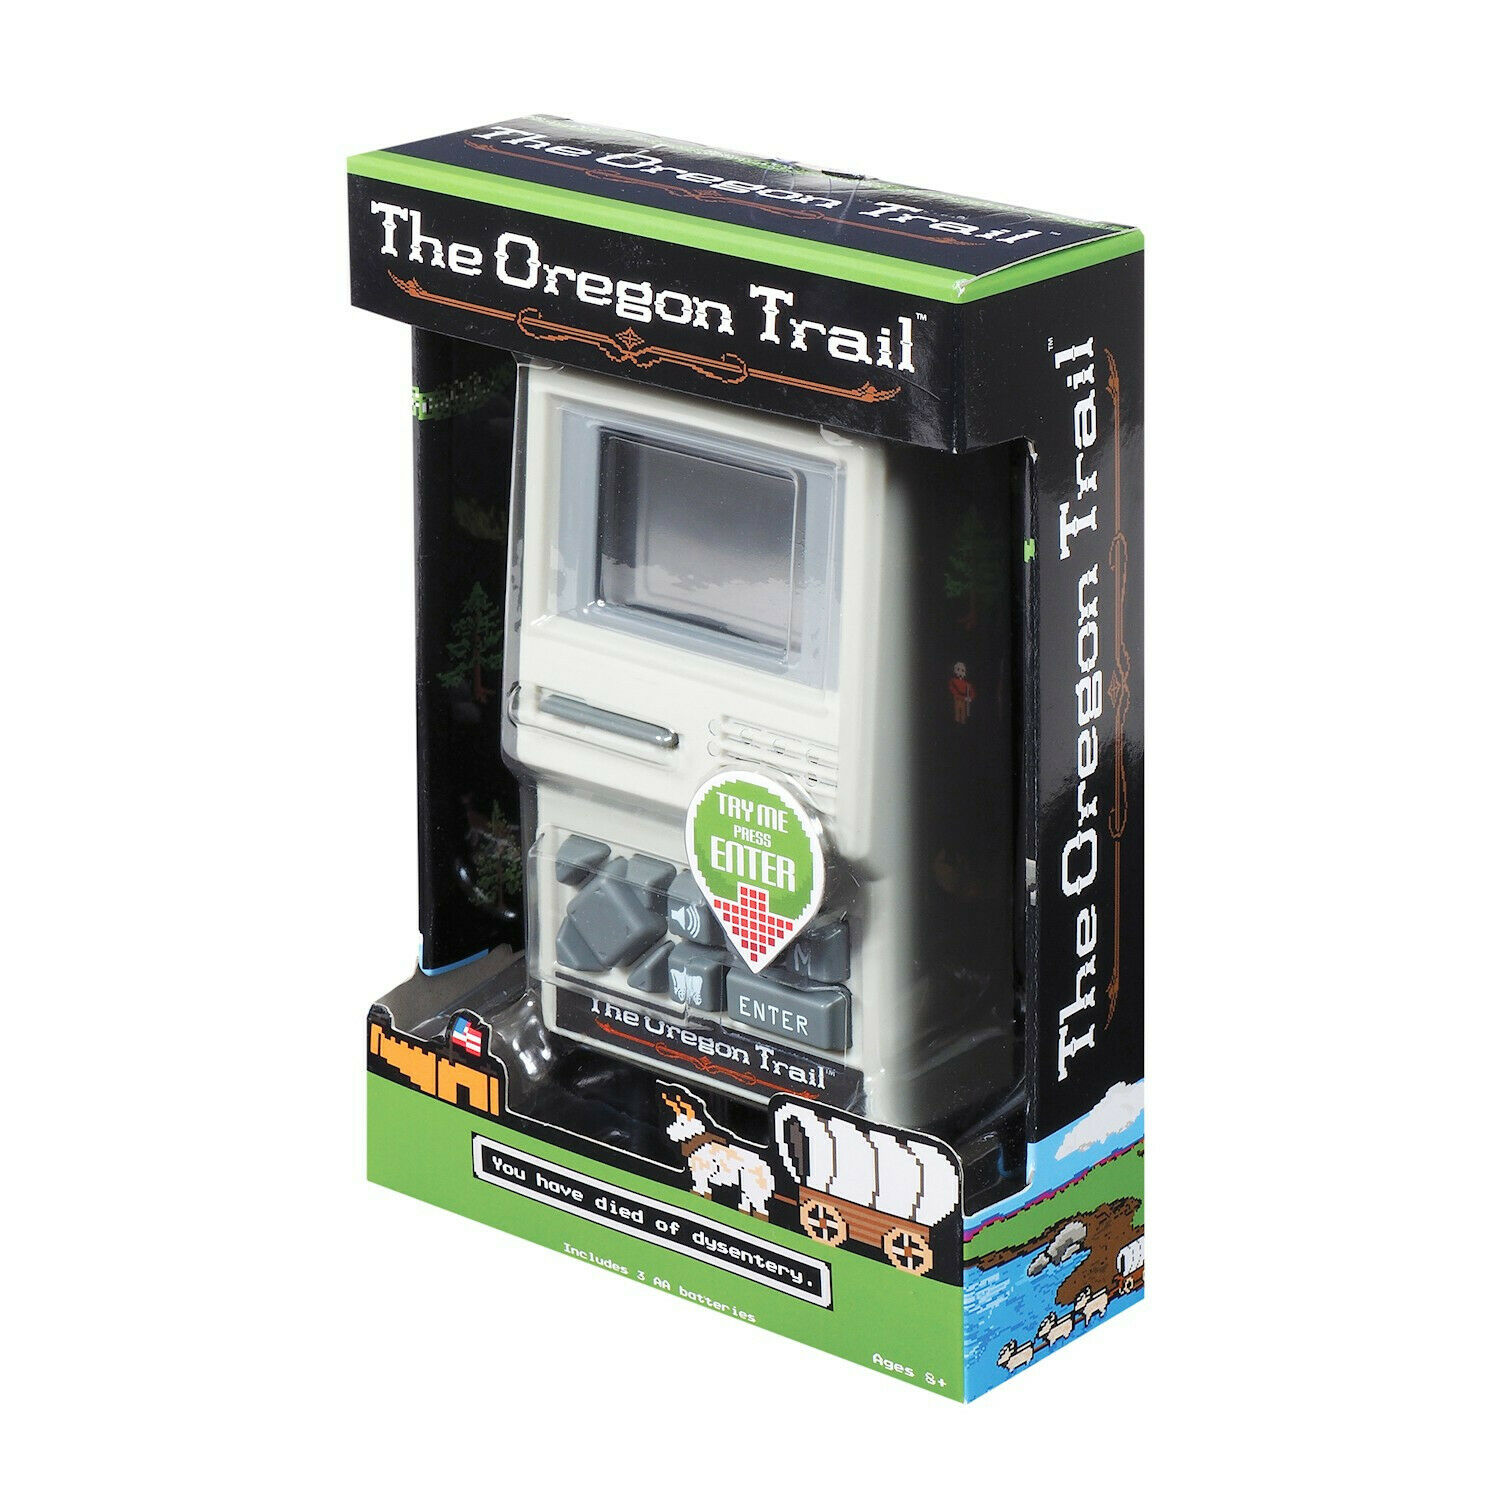 Computer Games - The Oregon Trail Classic Computer Handheld Game Brand New In Box Ships Fast